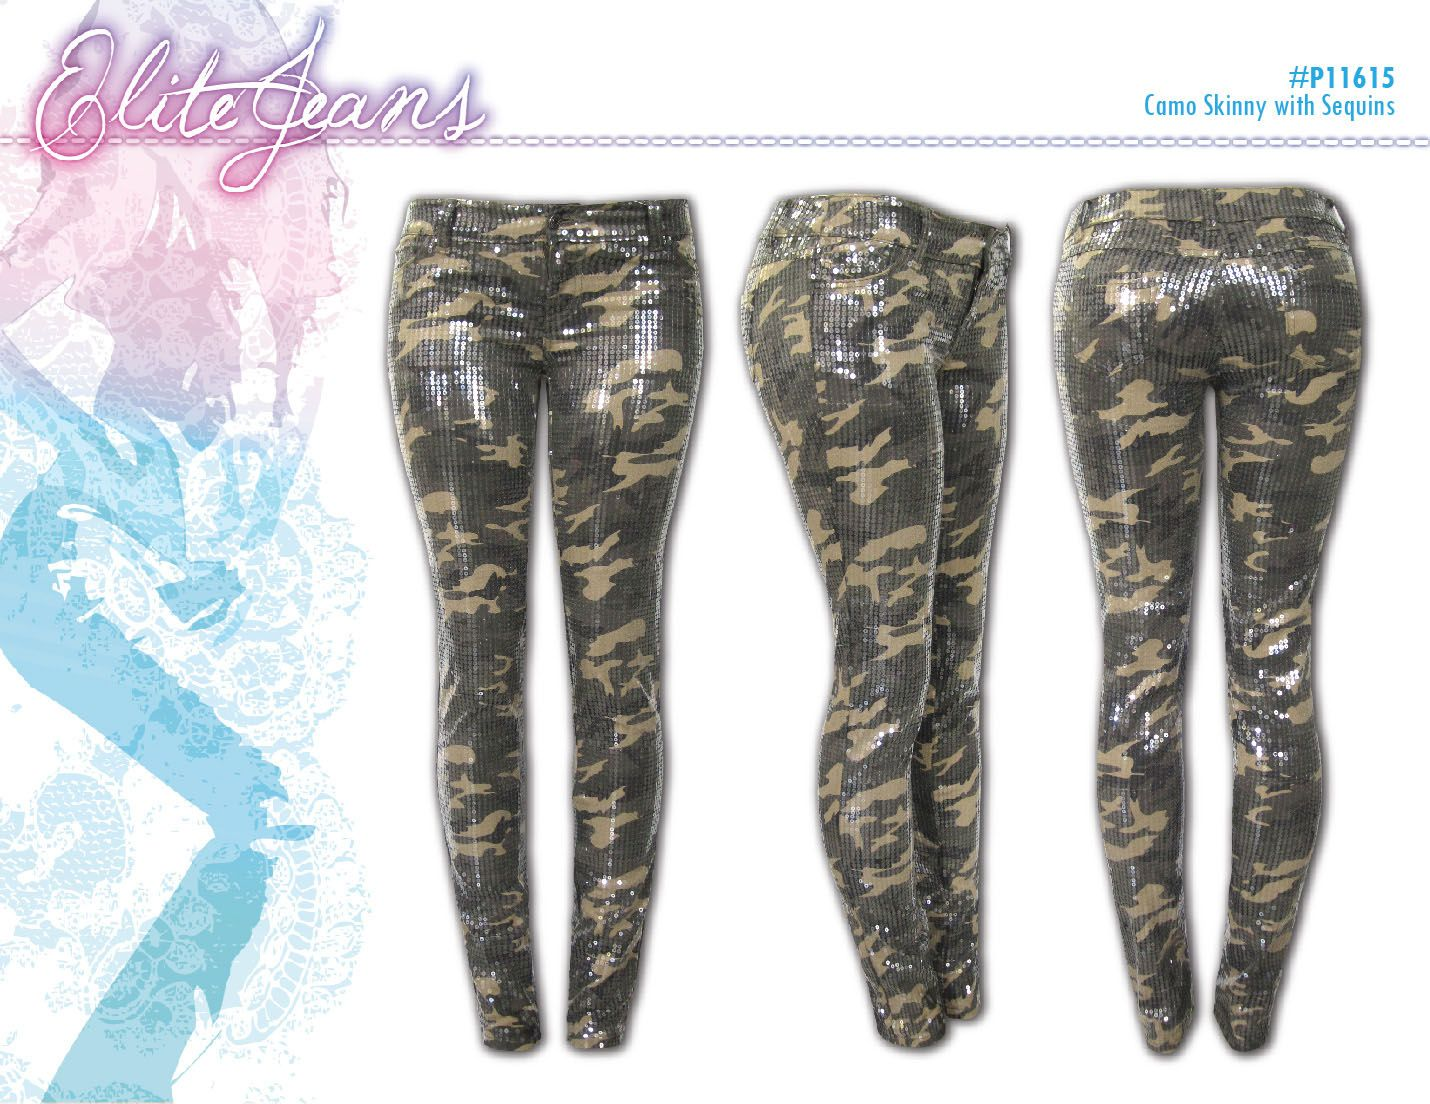 Camo!! With clear sequins!